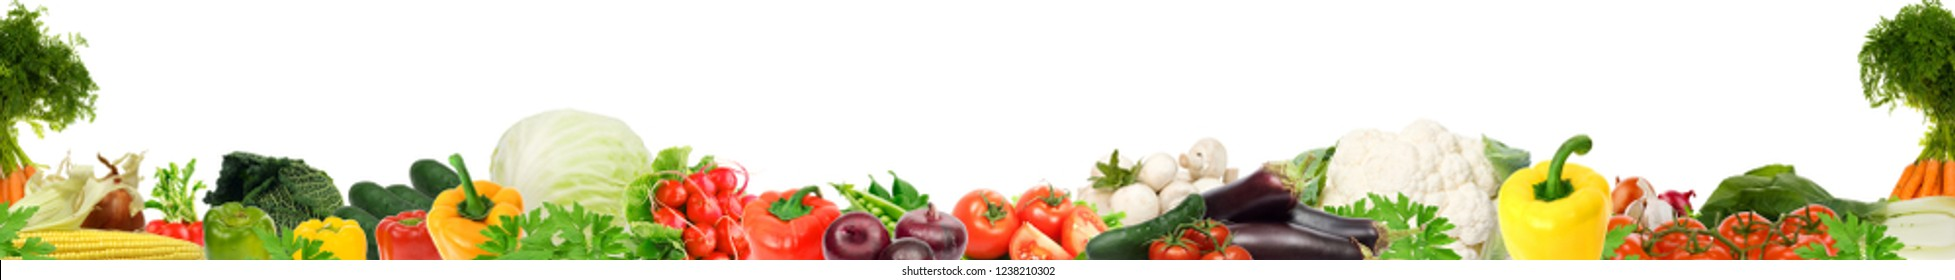 Beautiful vegetables on a white background.